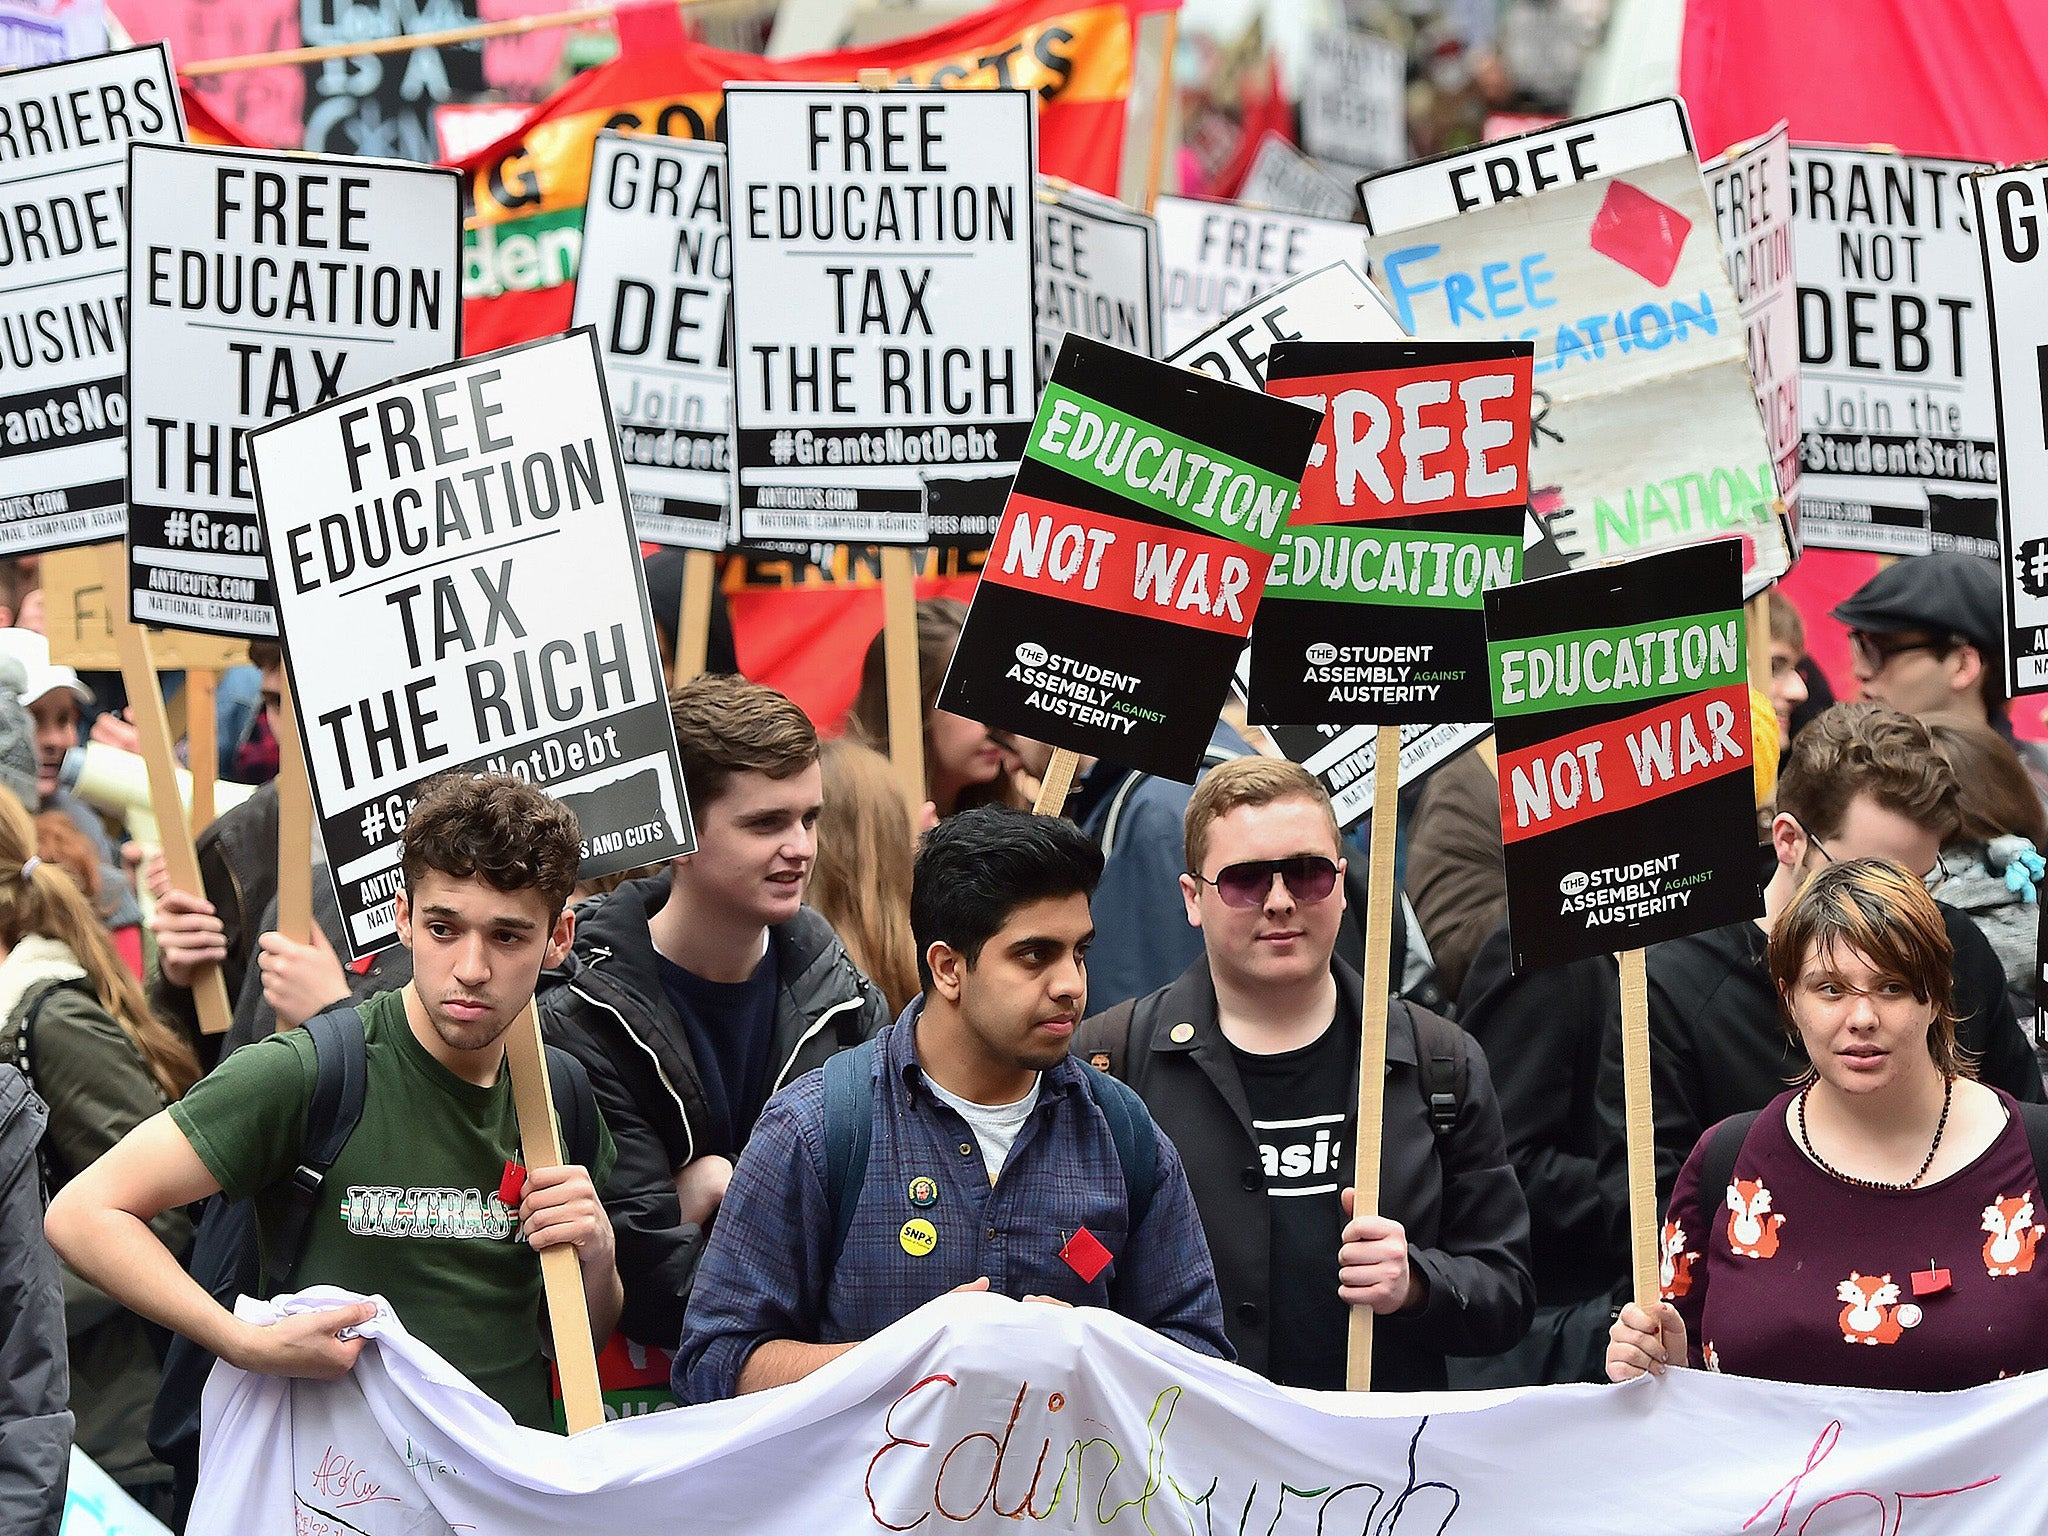 Theresa may under pressure to cut cost of university as public rejects high fees and huge debts the independent